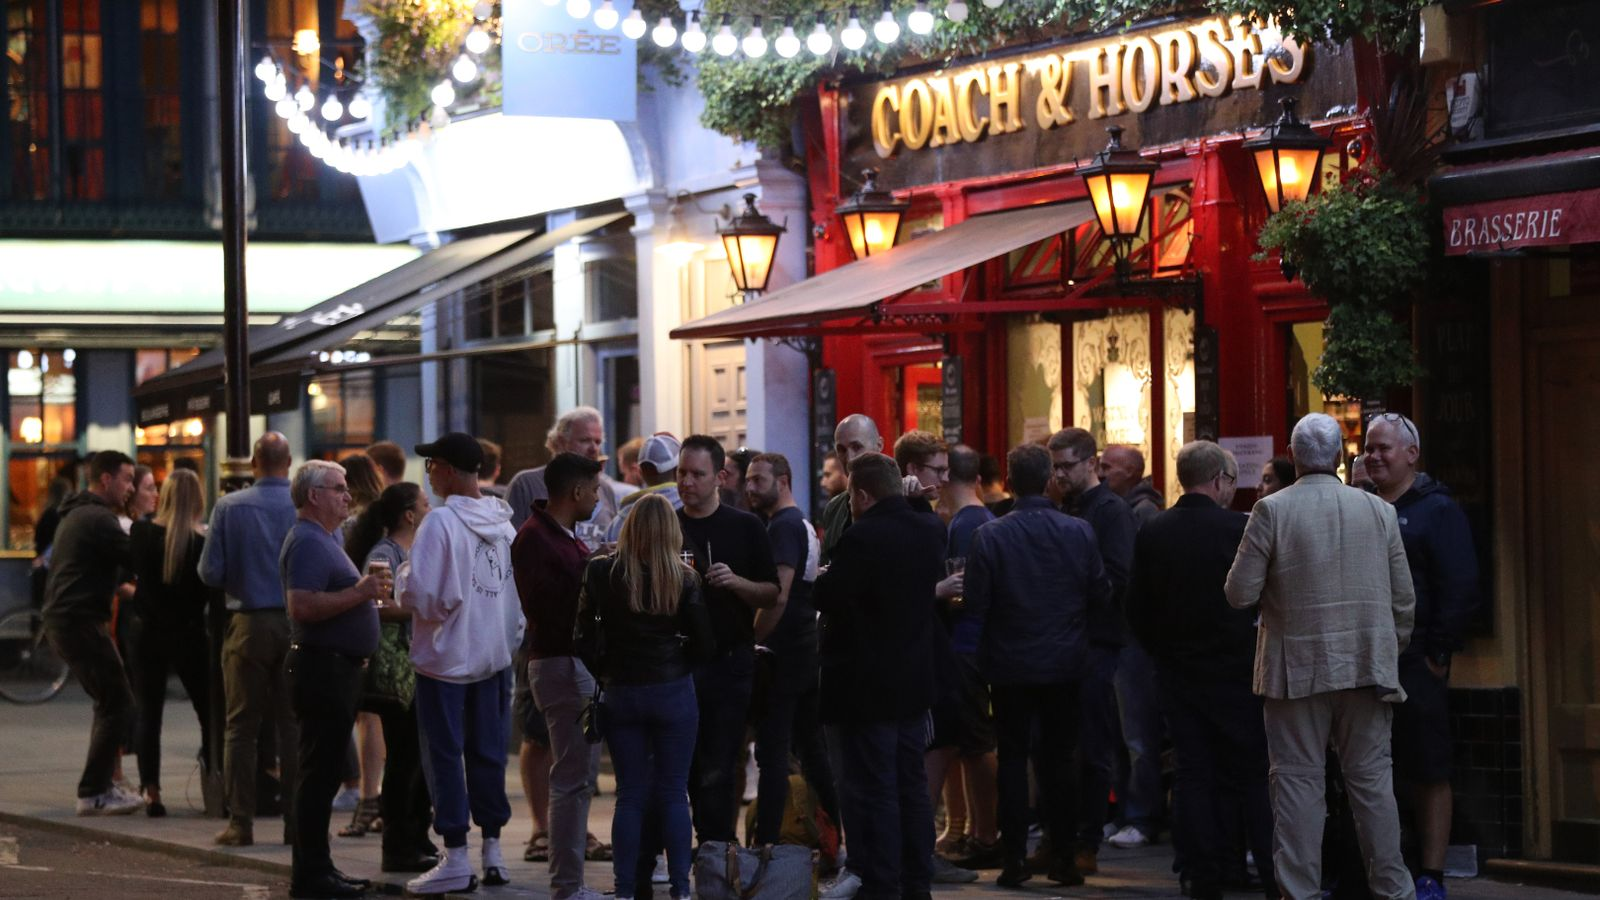 Coronavirus curfew: Pubs and restaurants will be forced to shut at 10pm